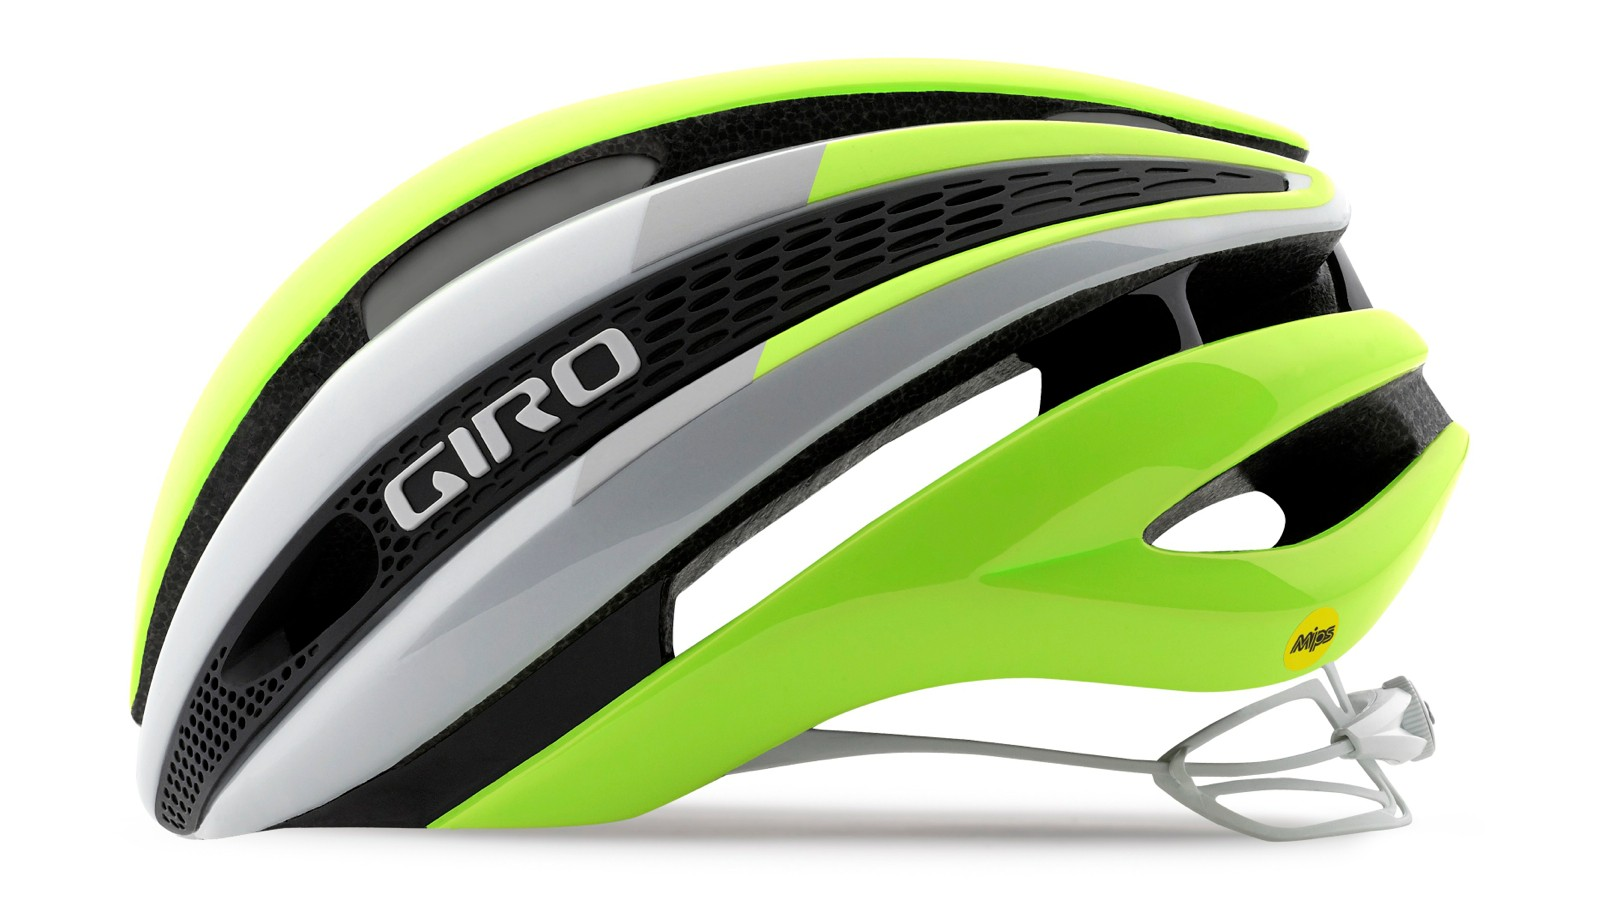 The new Giro Synthe MIPS will go on sale in August